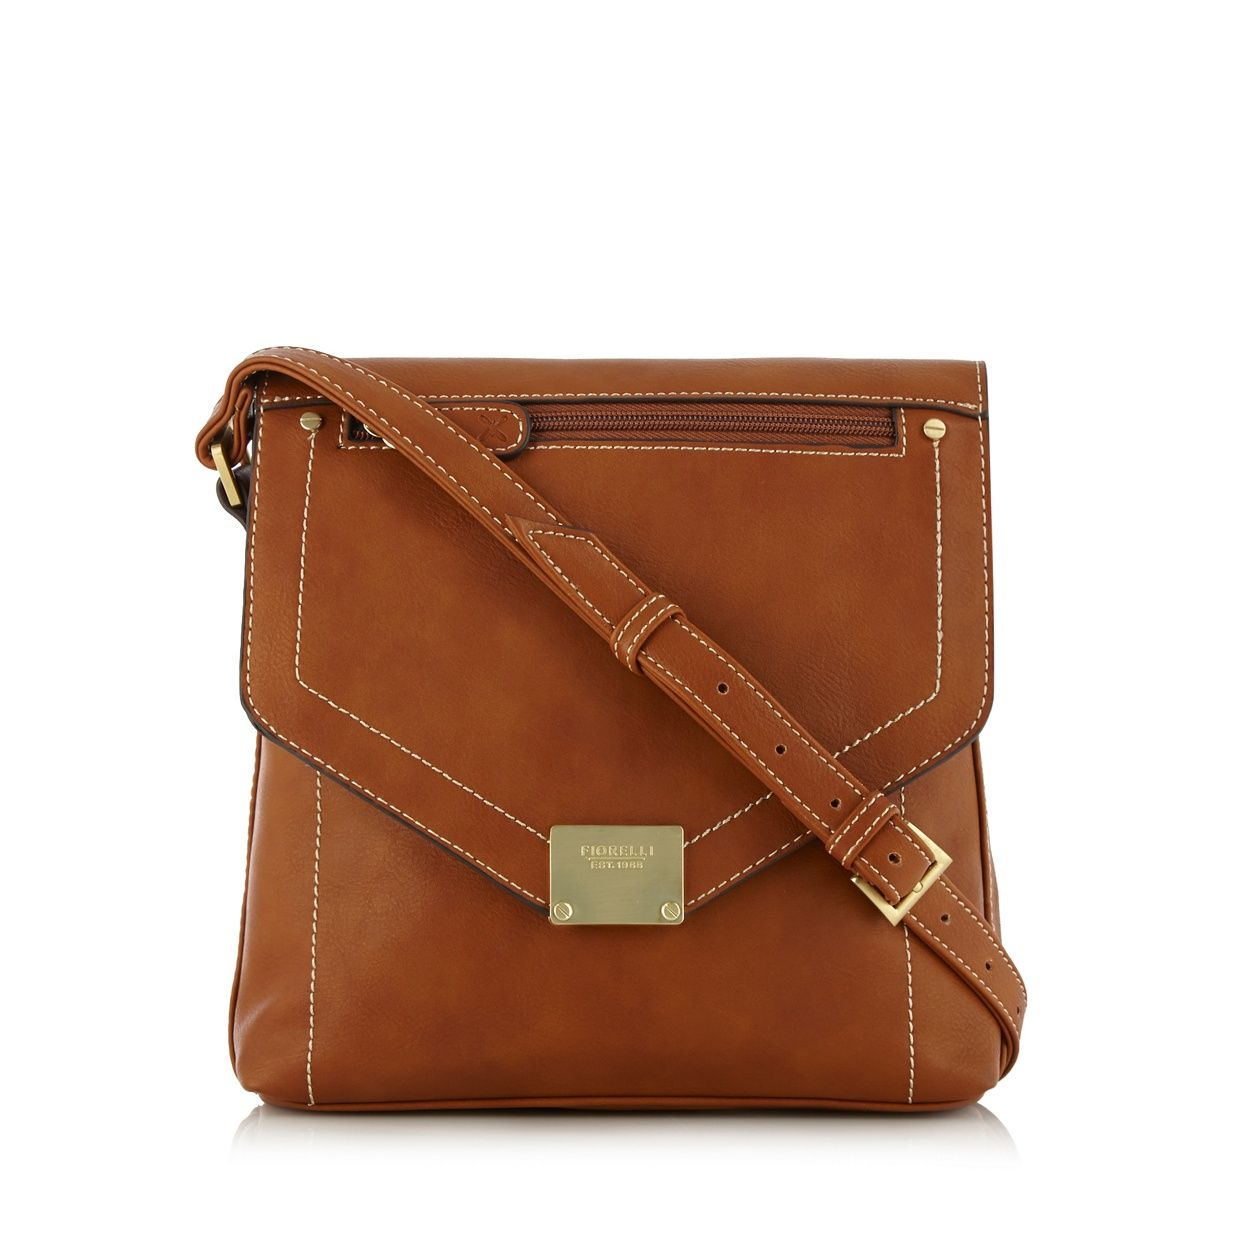 Fiorelli Tan cross body bag- at Debenhams.com